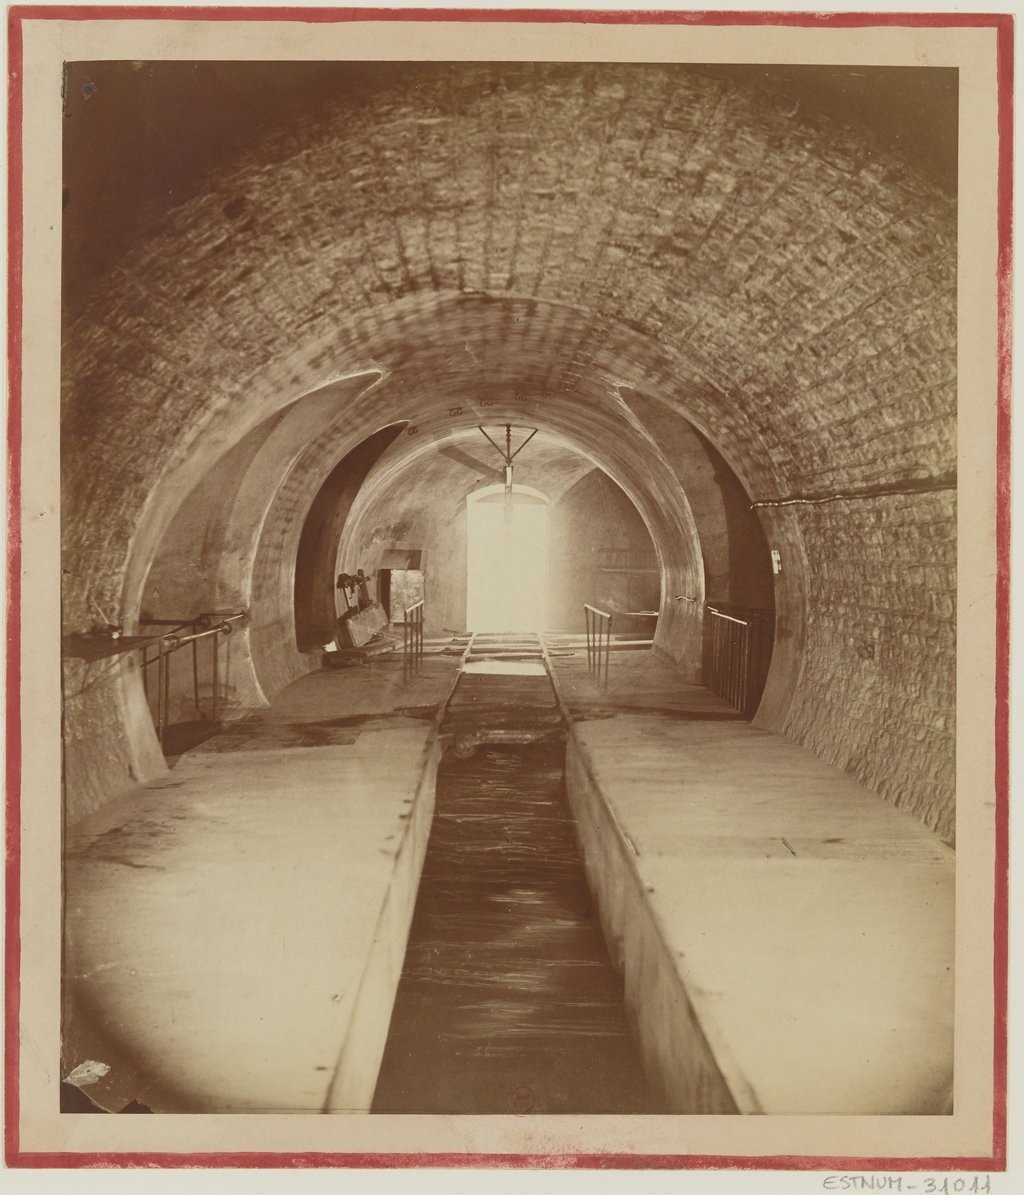 Paris sewers photographed by Nadar